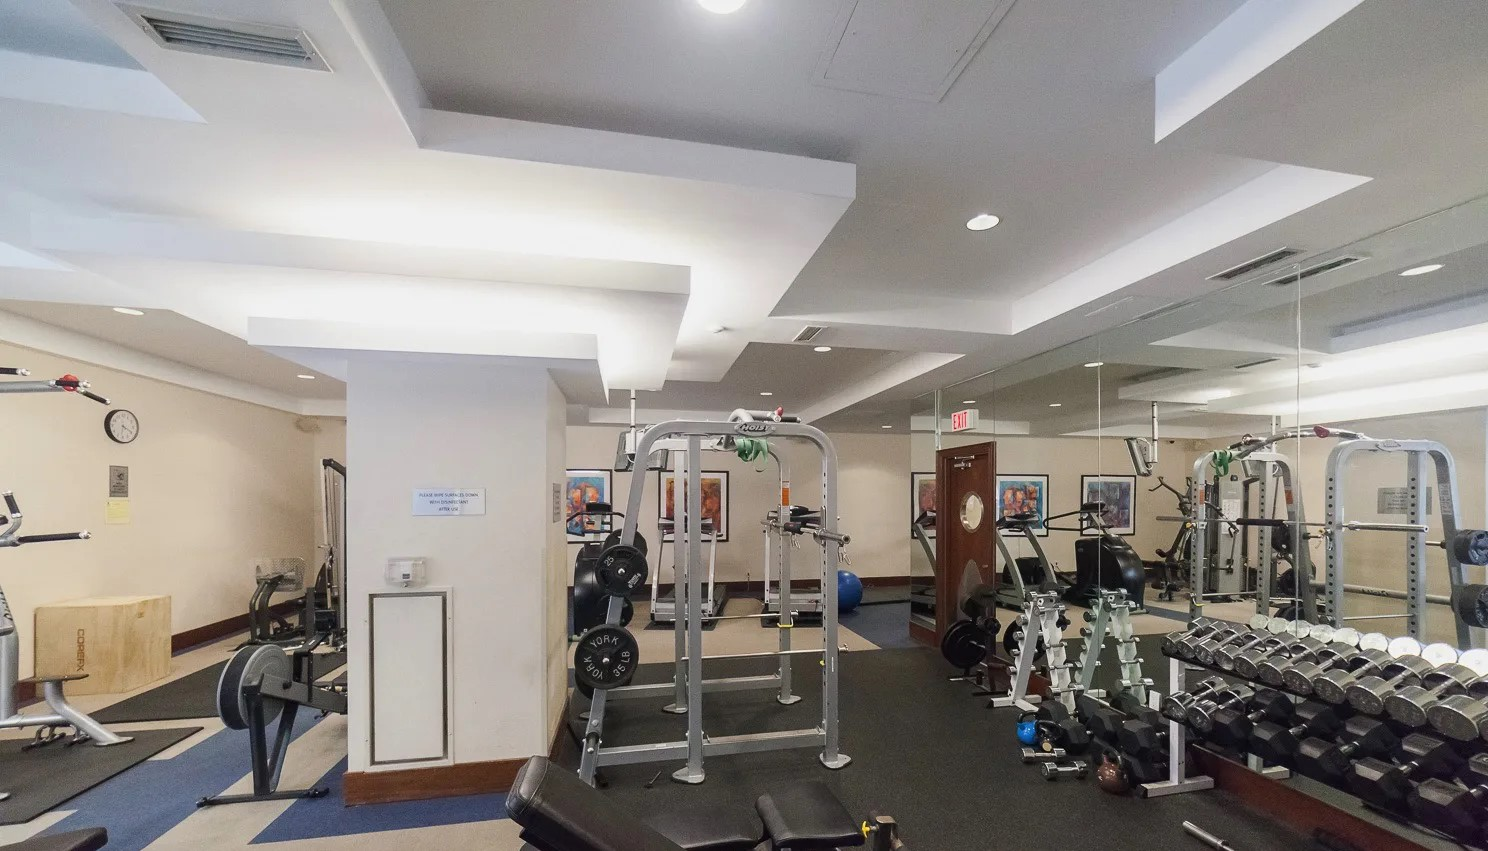 Qwest Condos gym with weights, dumbbells and other exercise equipment.